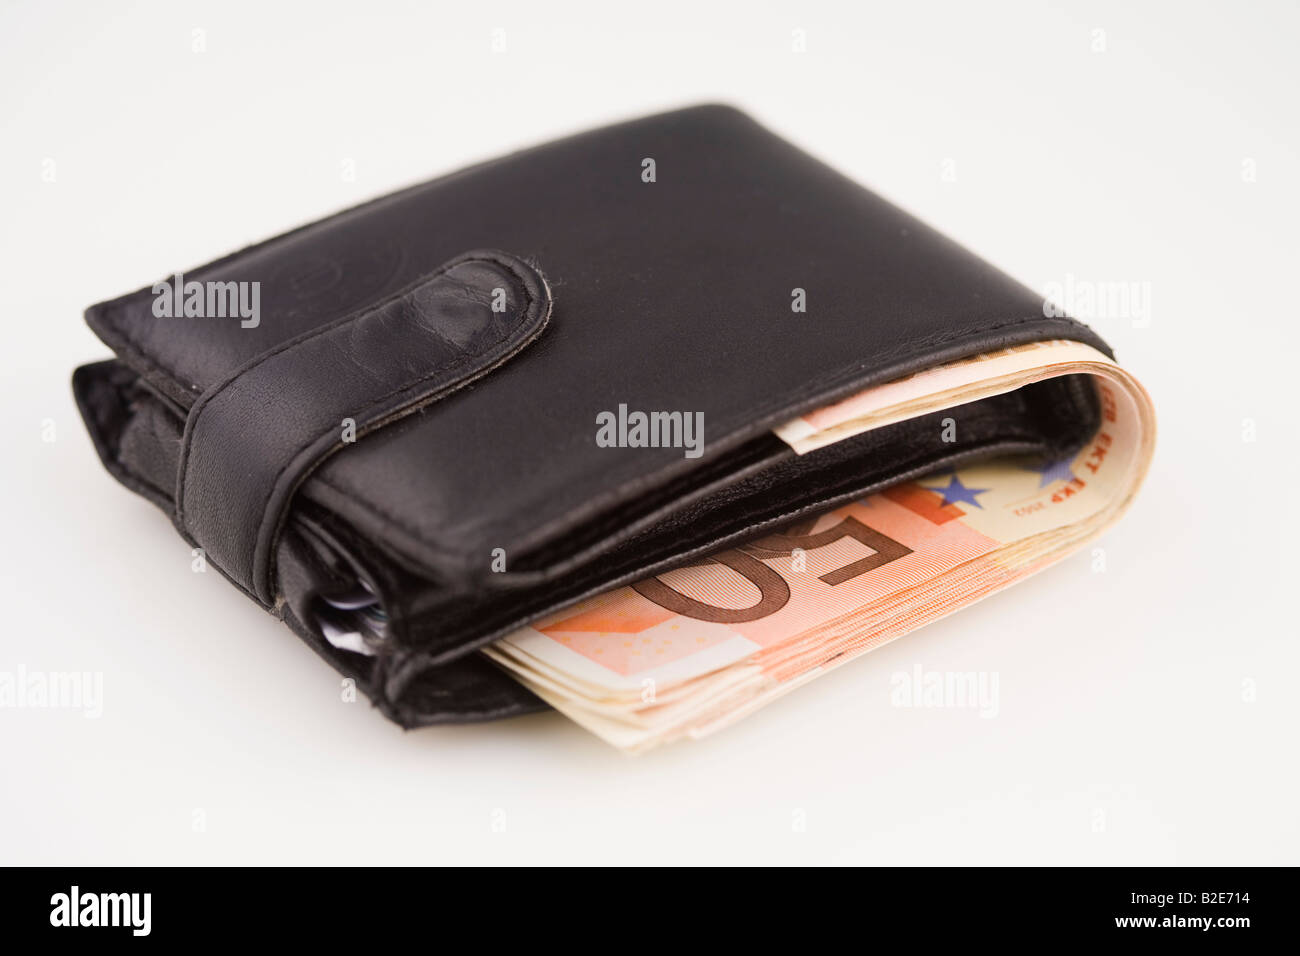 Wallet containing many fifty Euro notes - Stock Image